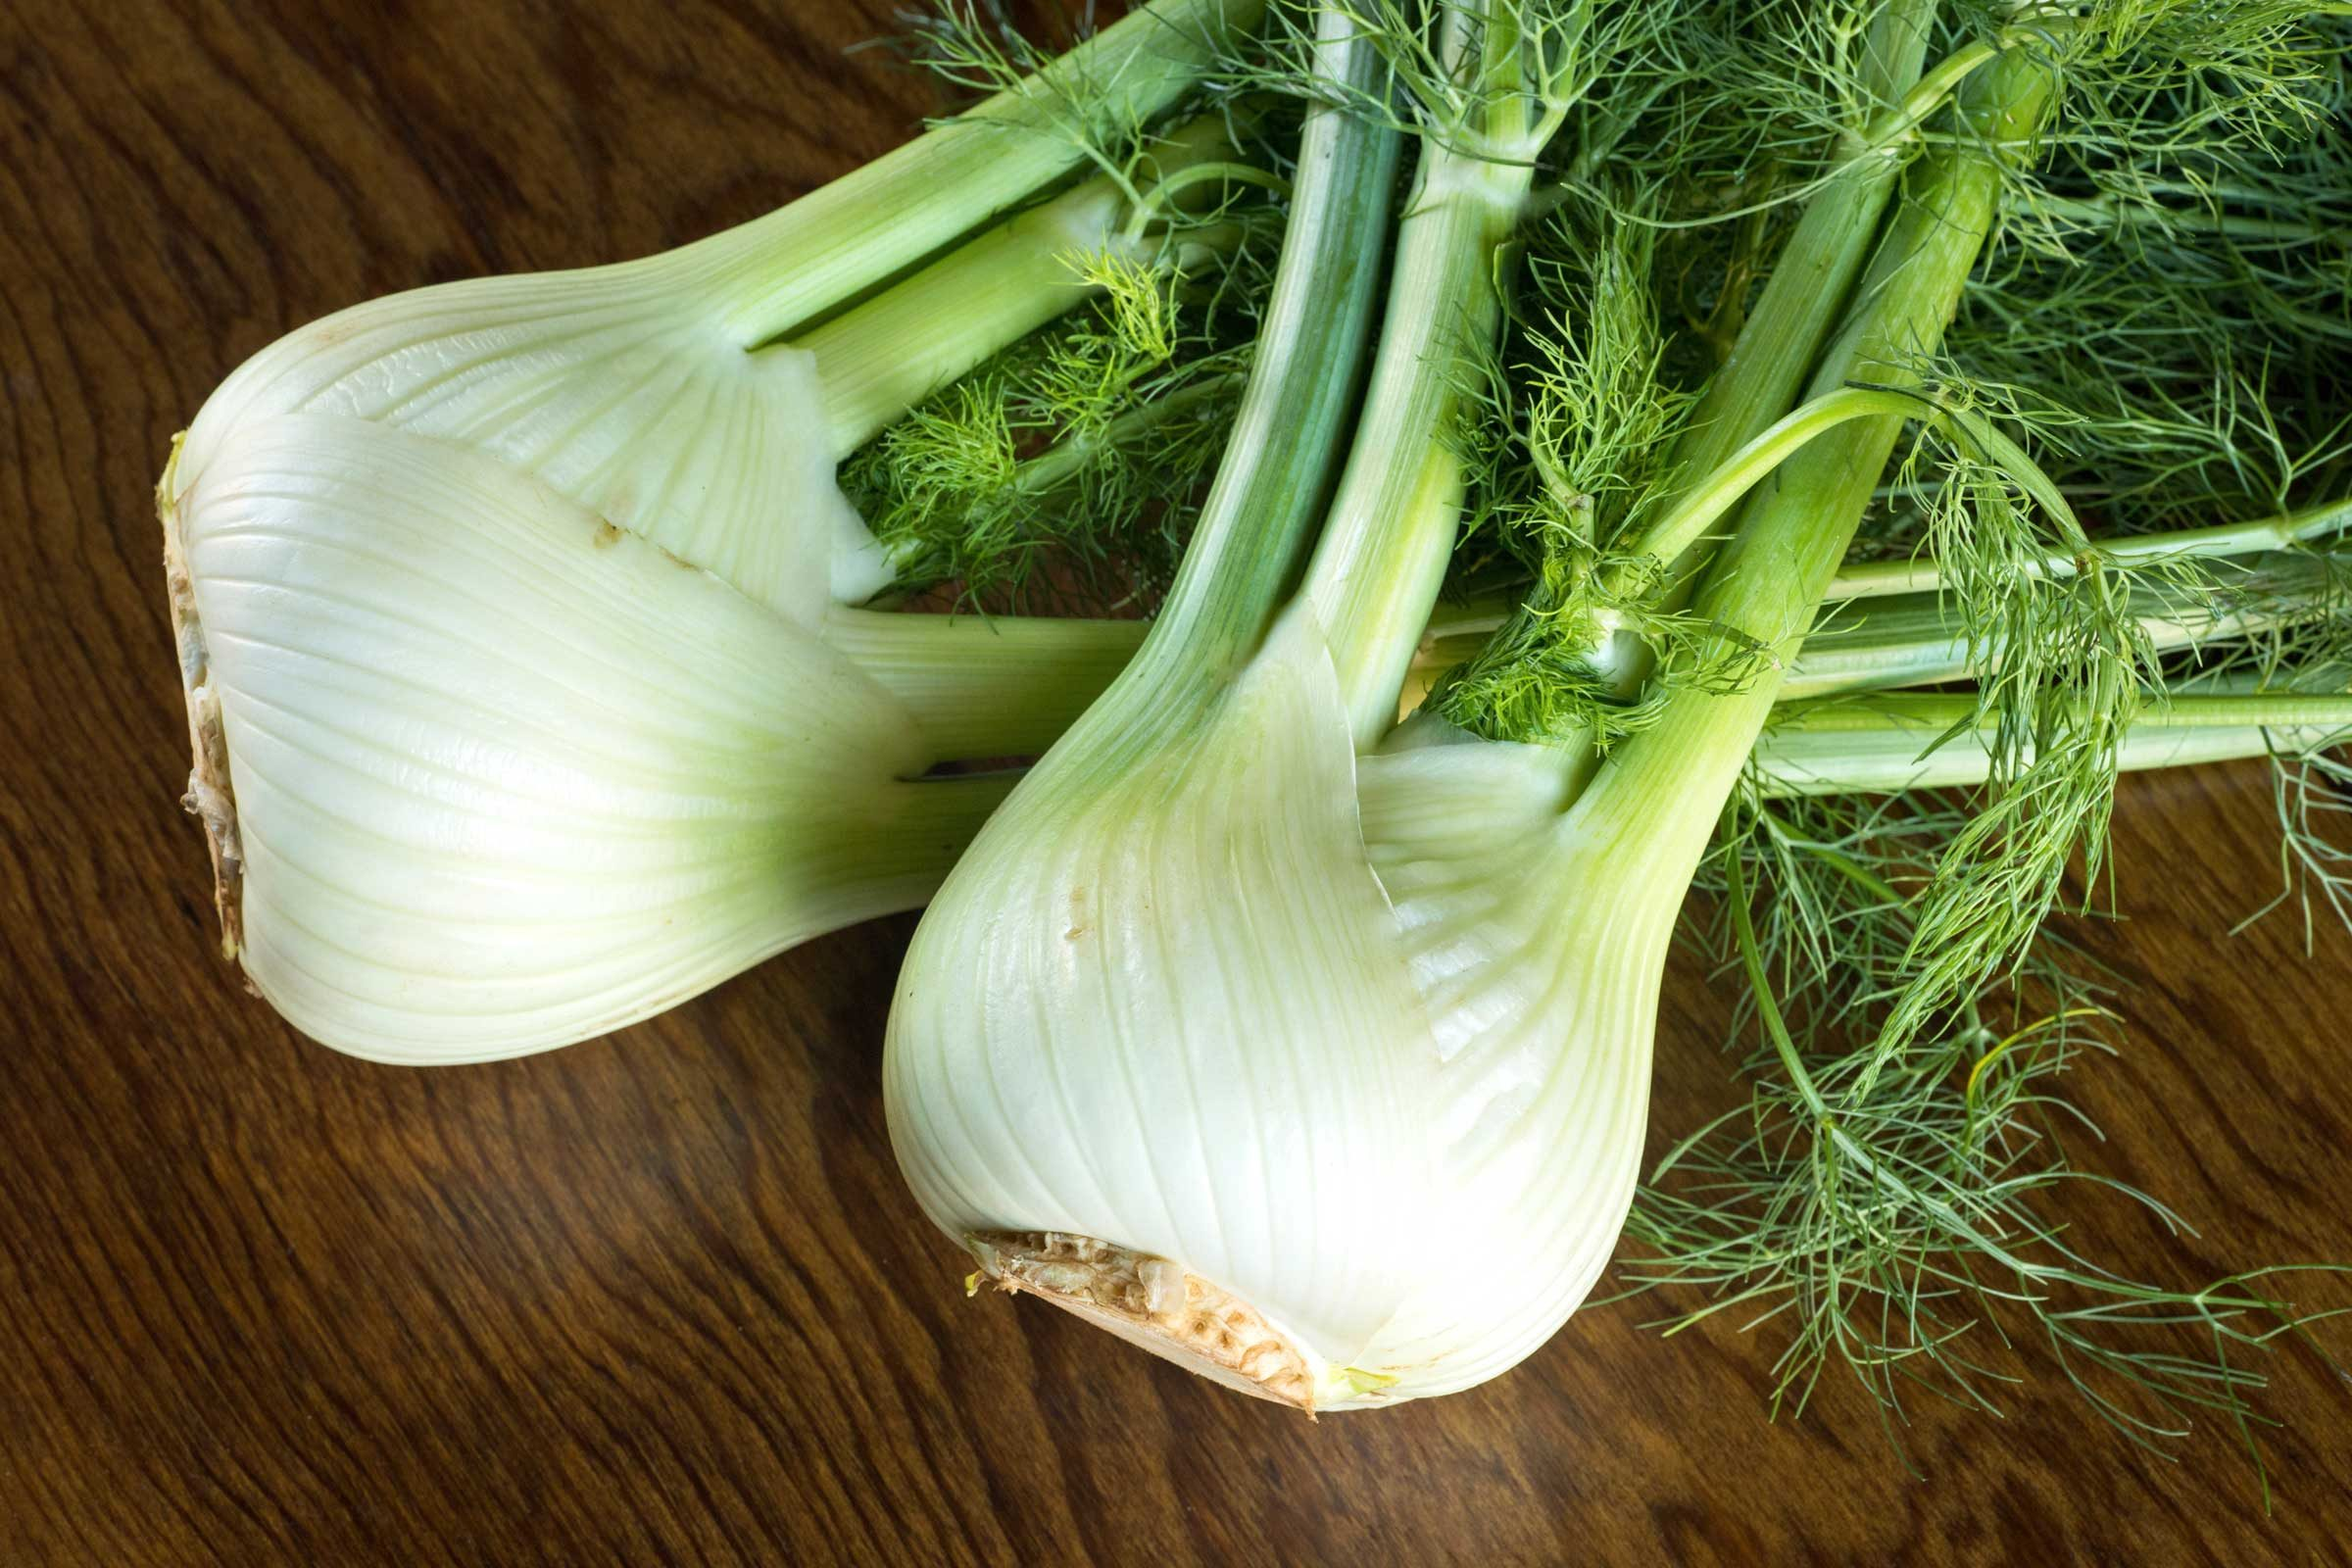 Find some fennel